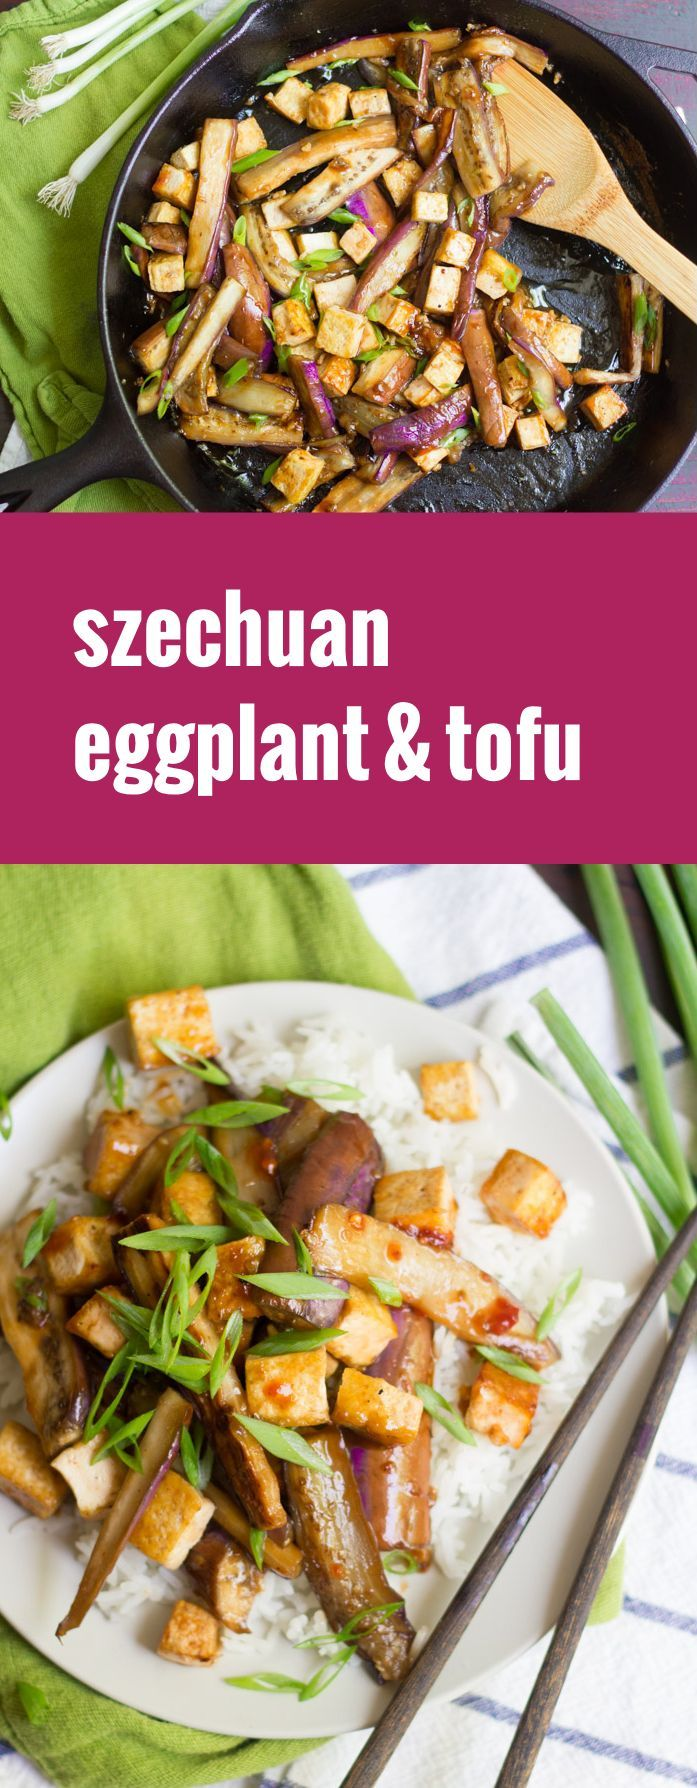 This melt-in-your-mouth Szechuan eggplant is pan fried, coated in a garlicky sweet-spicy sauce and served with crispy tofu over a bed of rice.